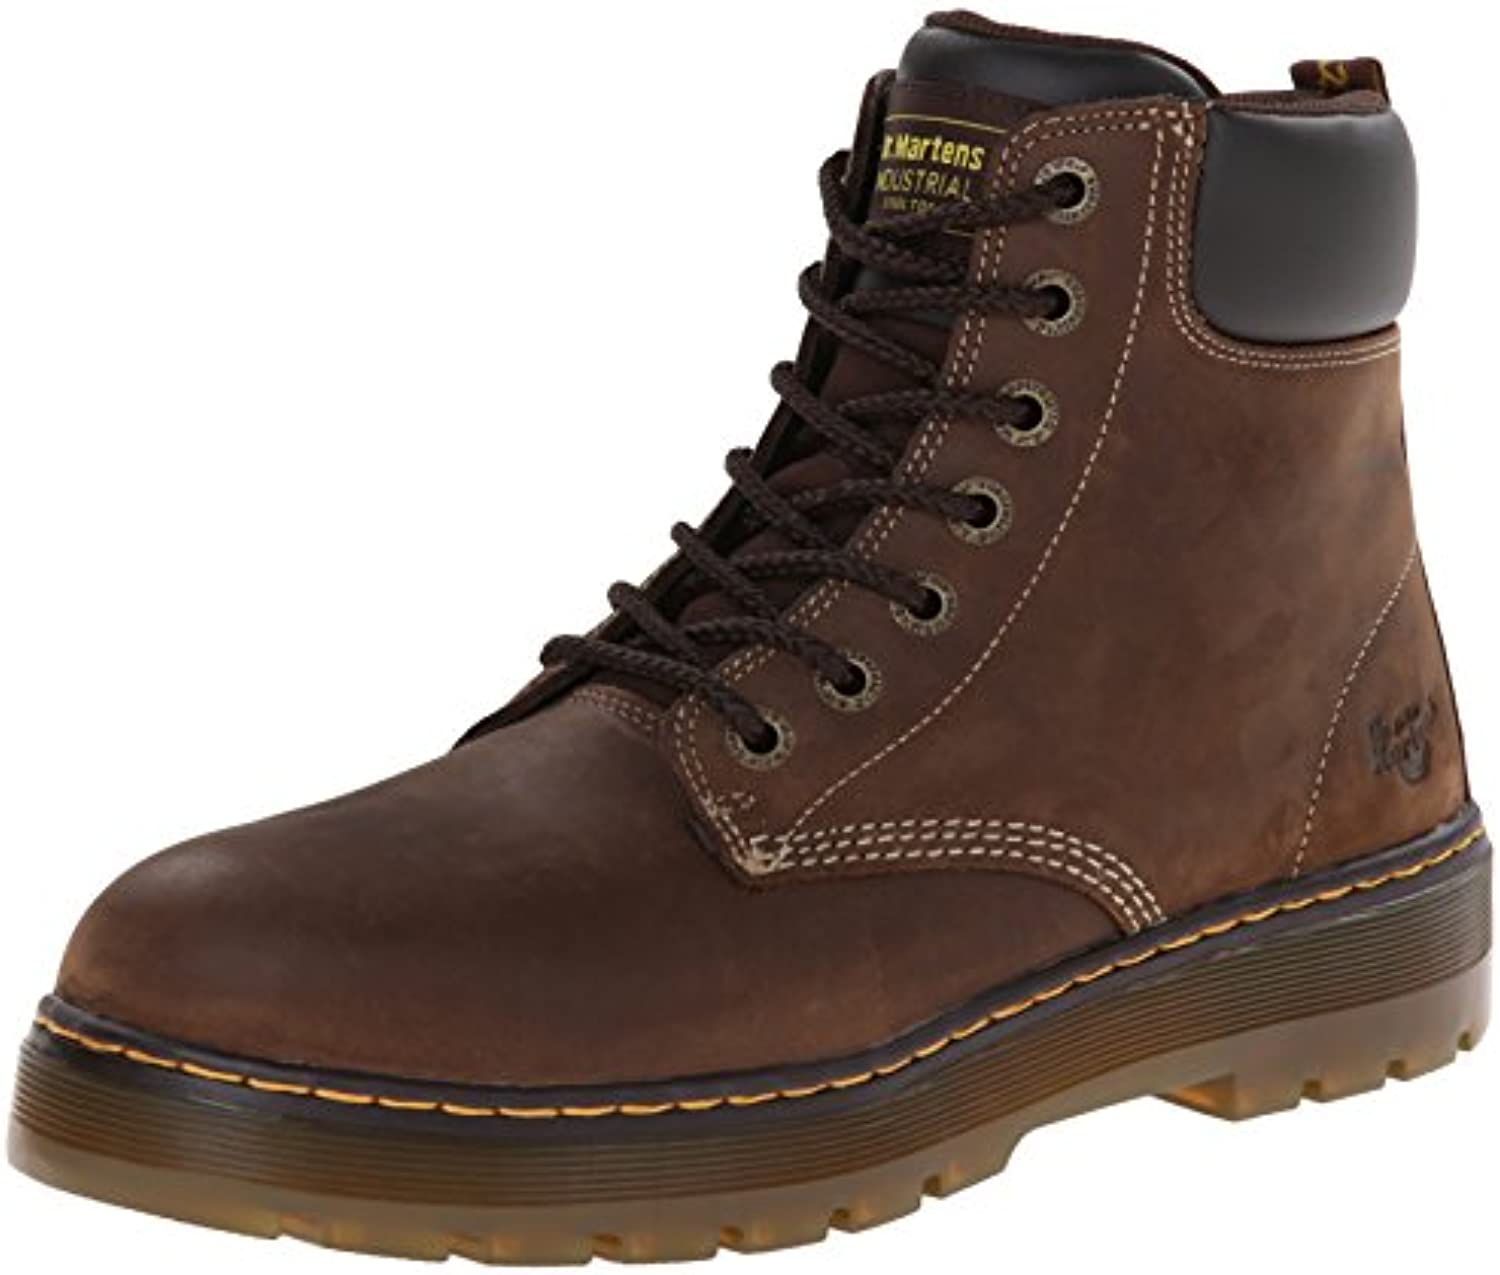 Dr. Martens Men's Winch 7 Eye Cushion Safety Toe Boot